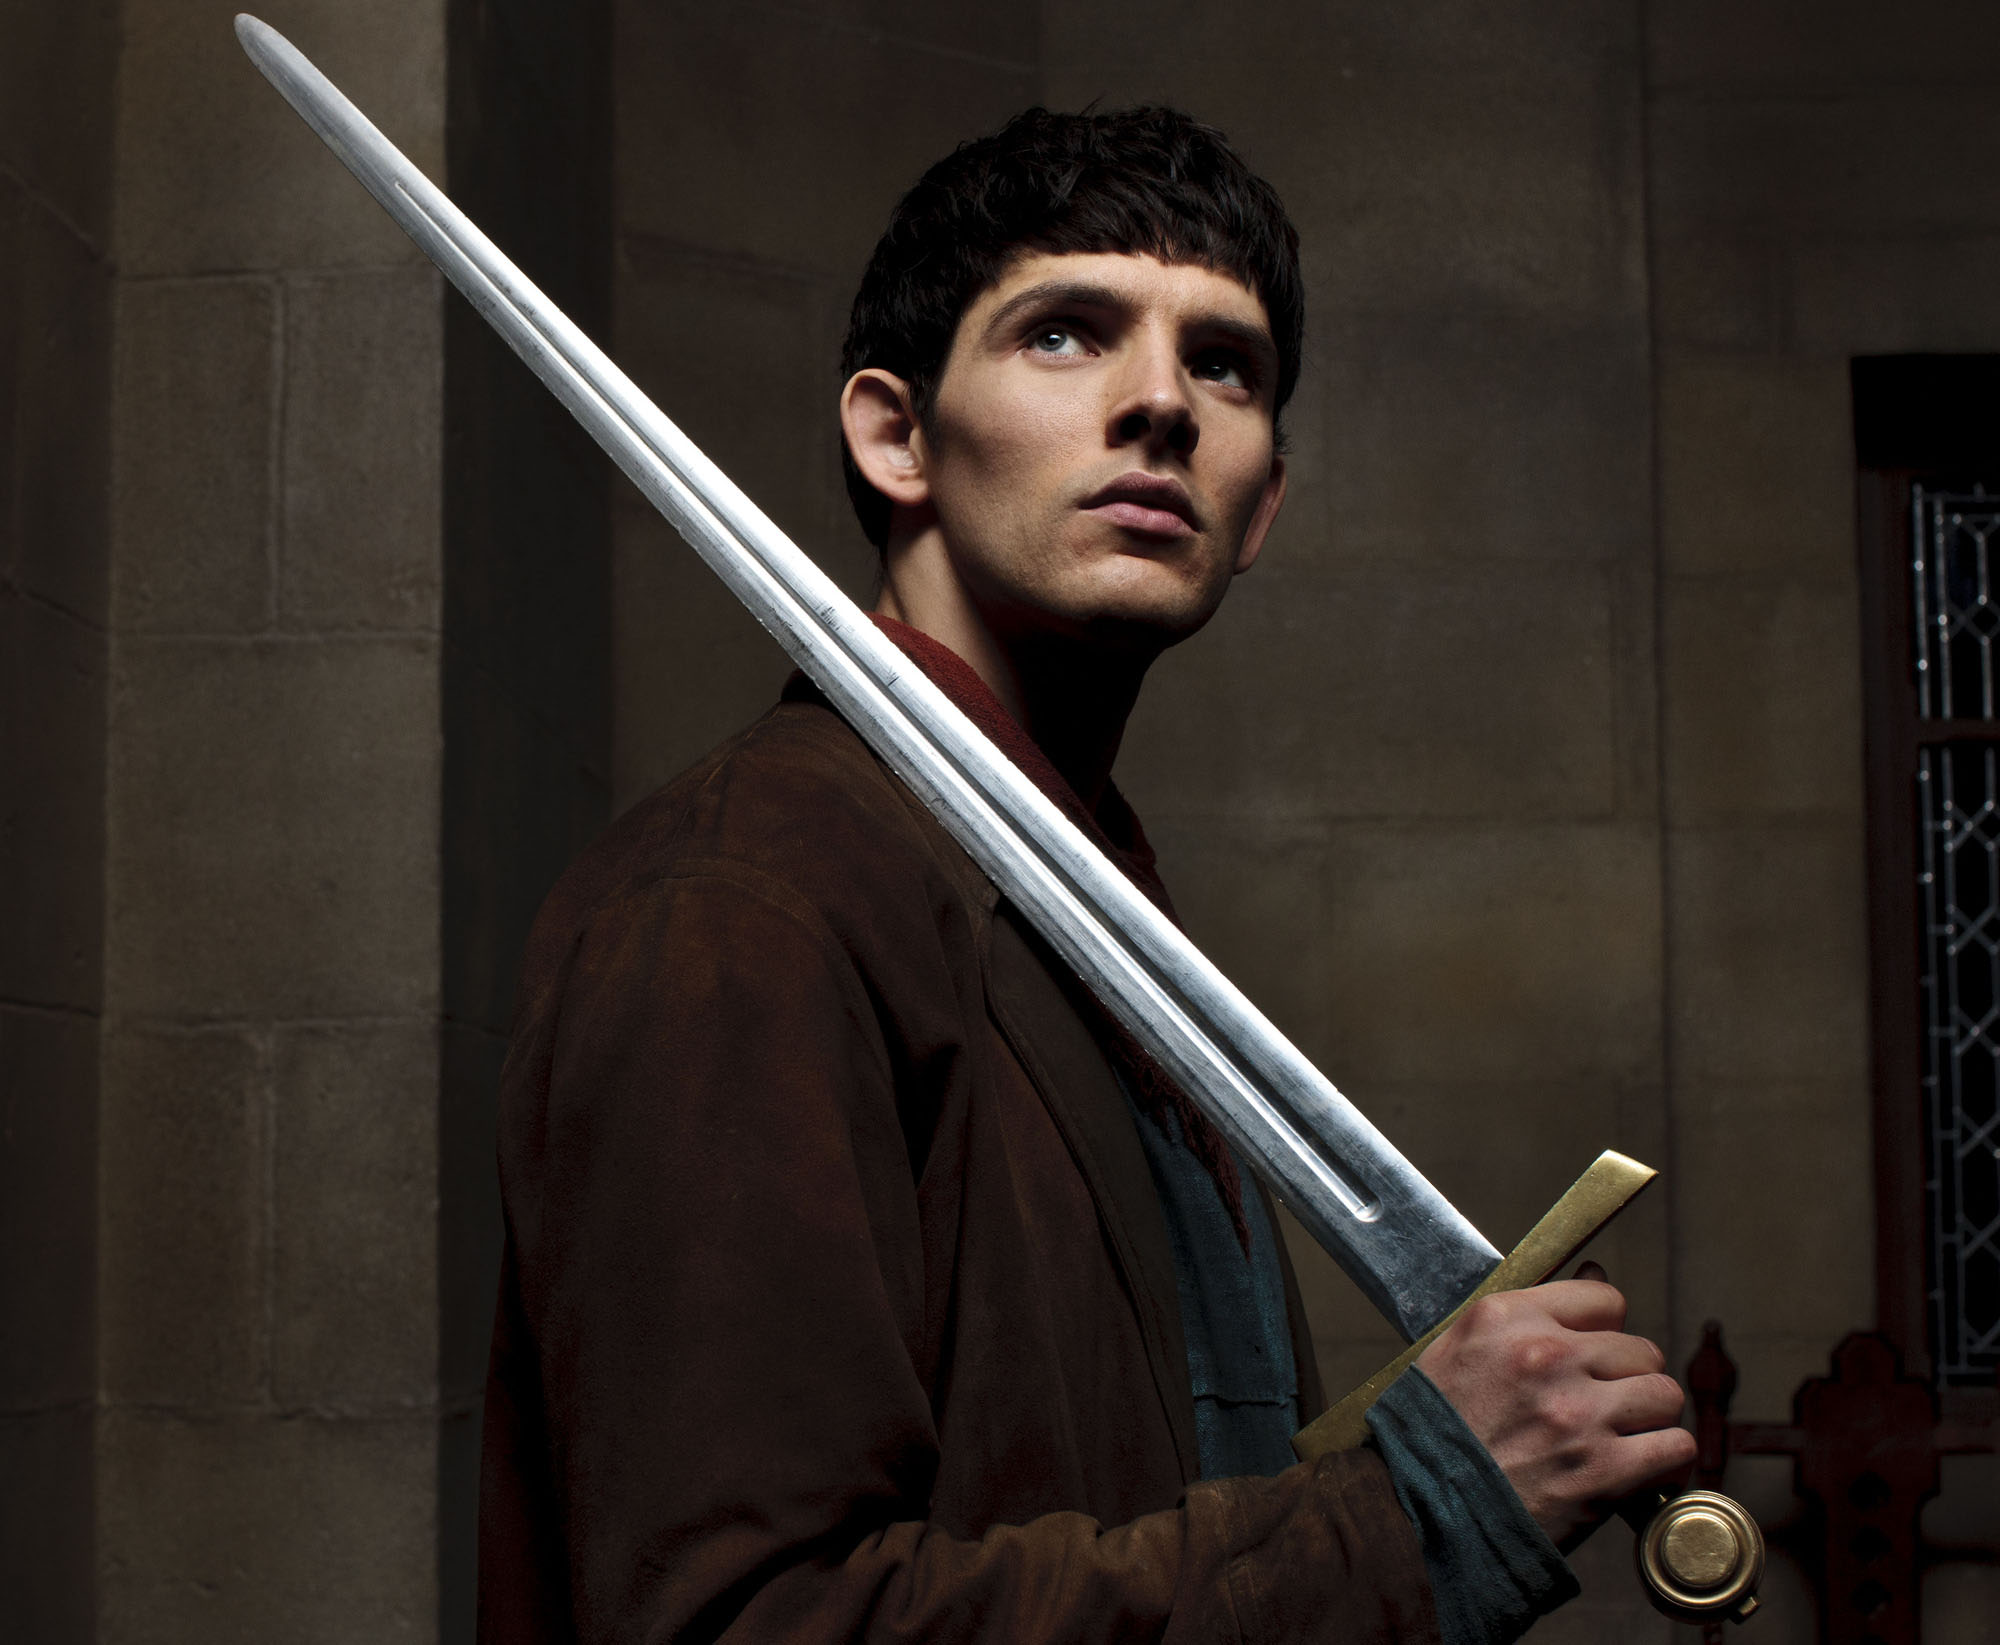 Merlin finally faces his destiny